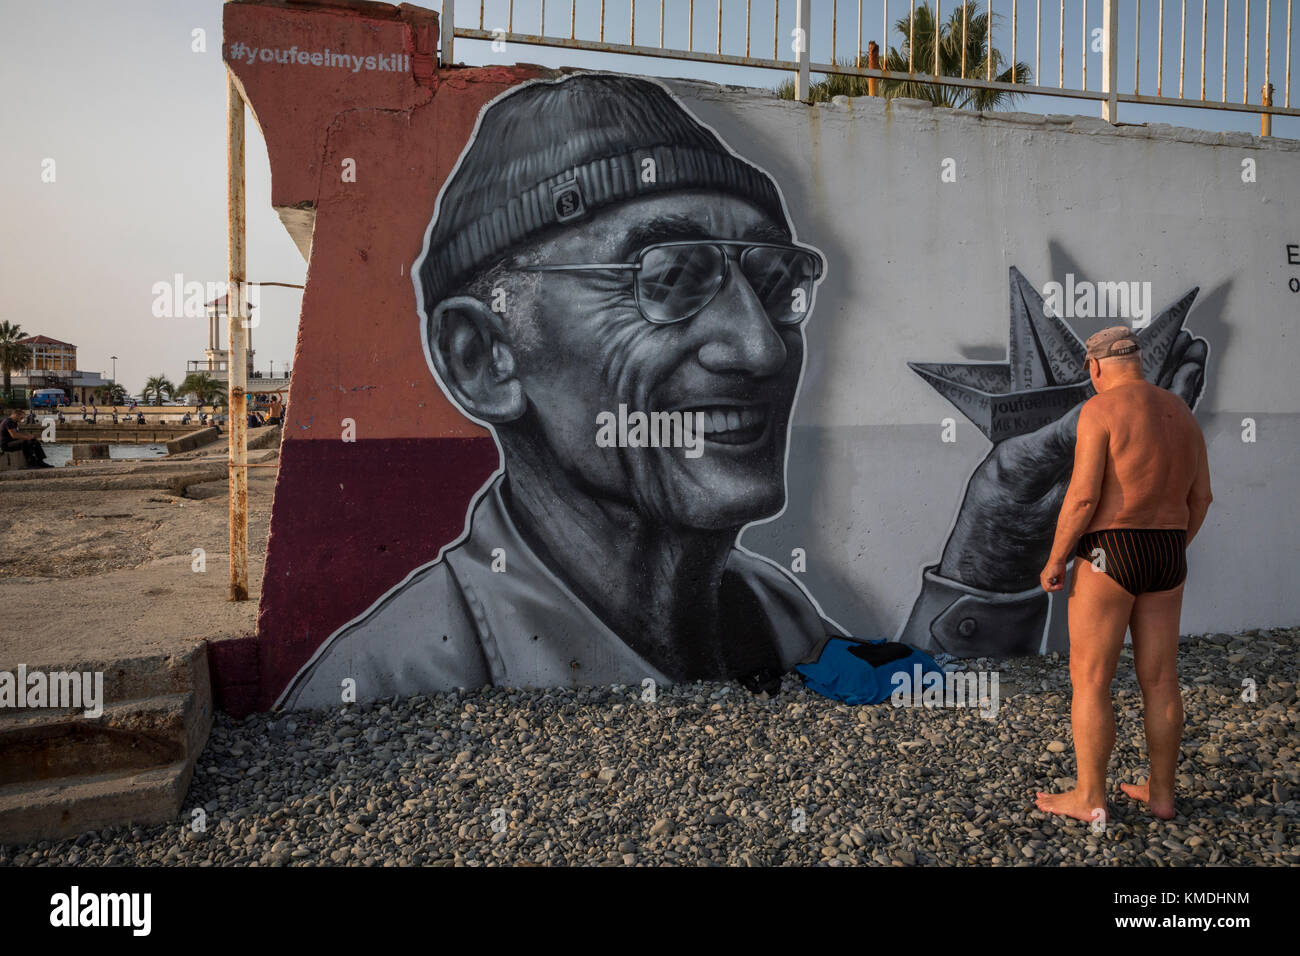 Portrait of the French explorer Jacques-Yves Cousteau on central city beach 'Mayak' in Sochi city, Krasnodar - Stock Image